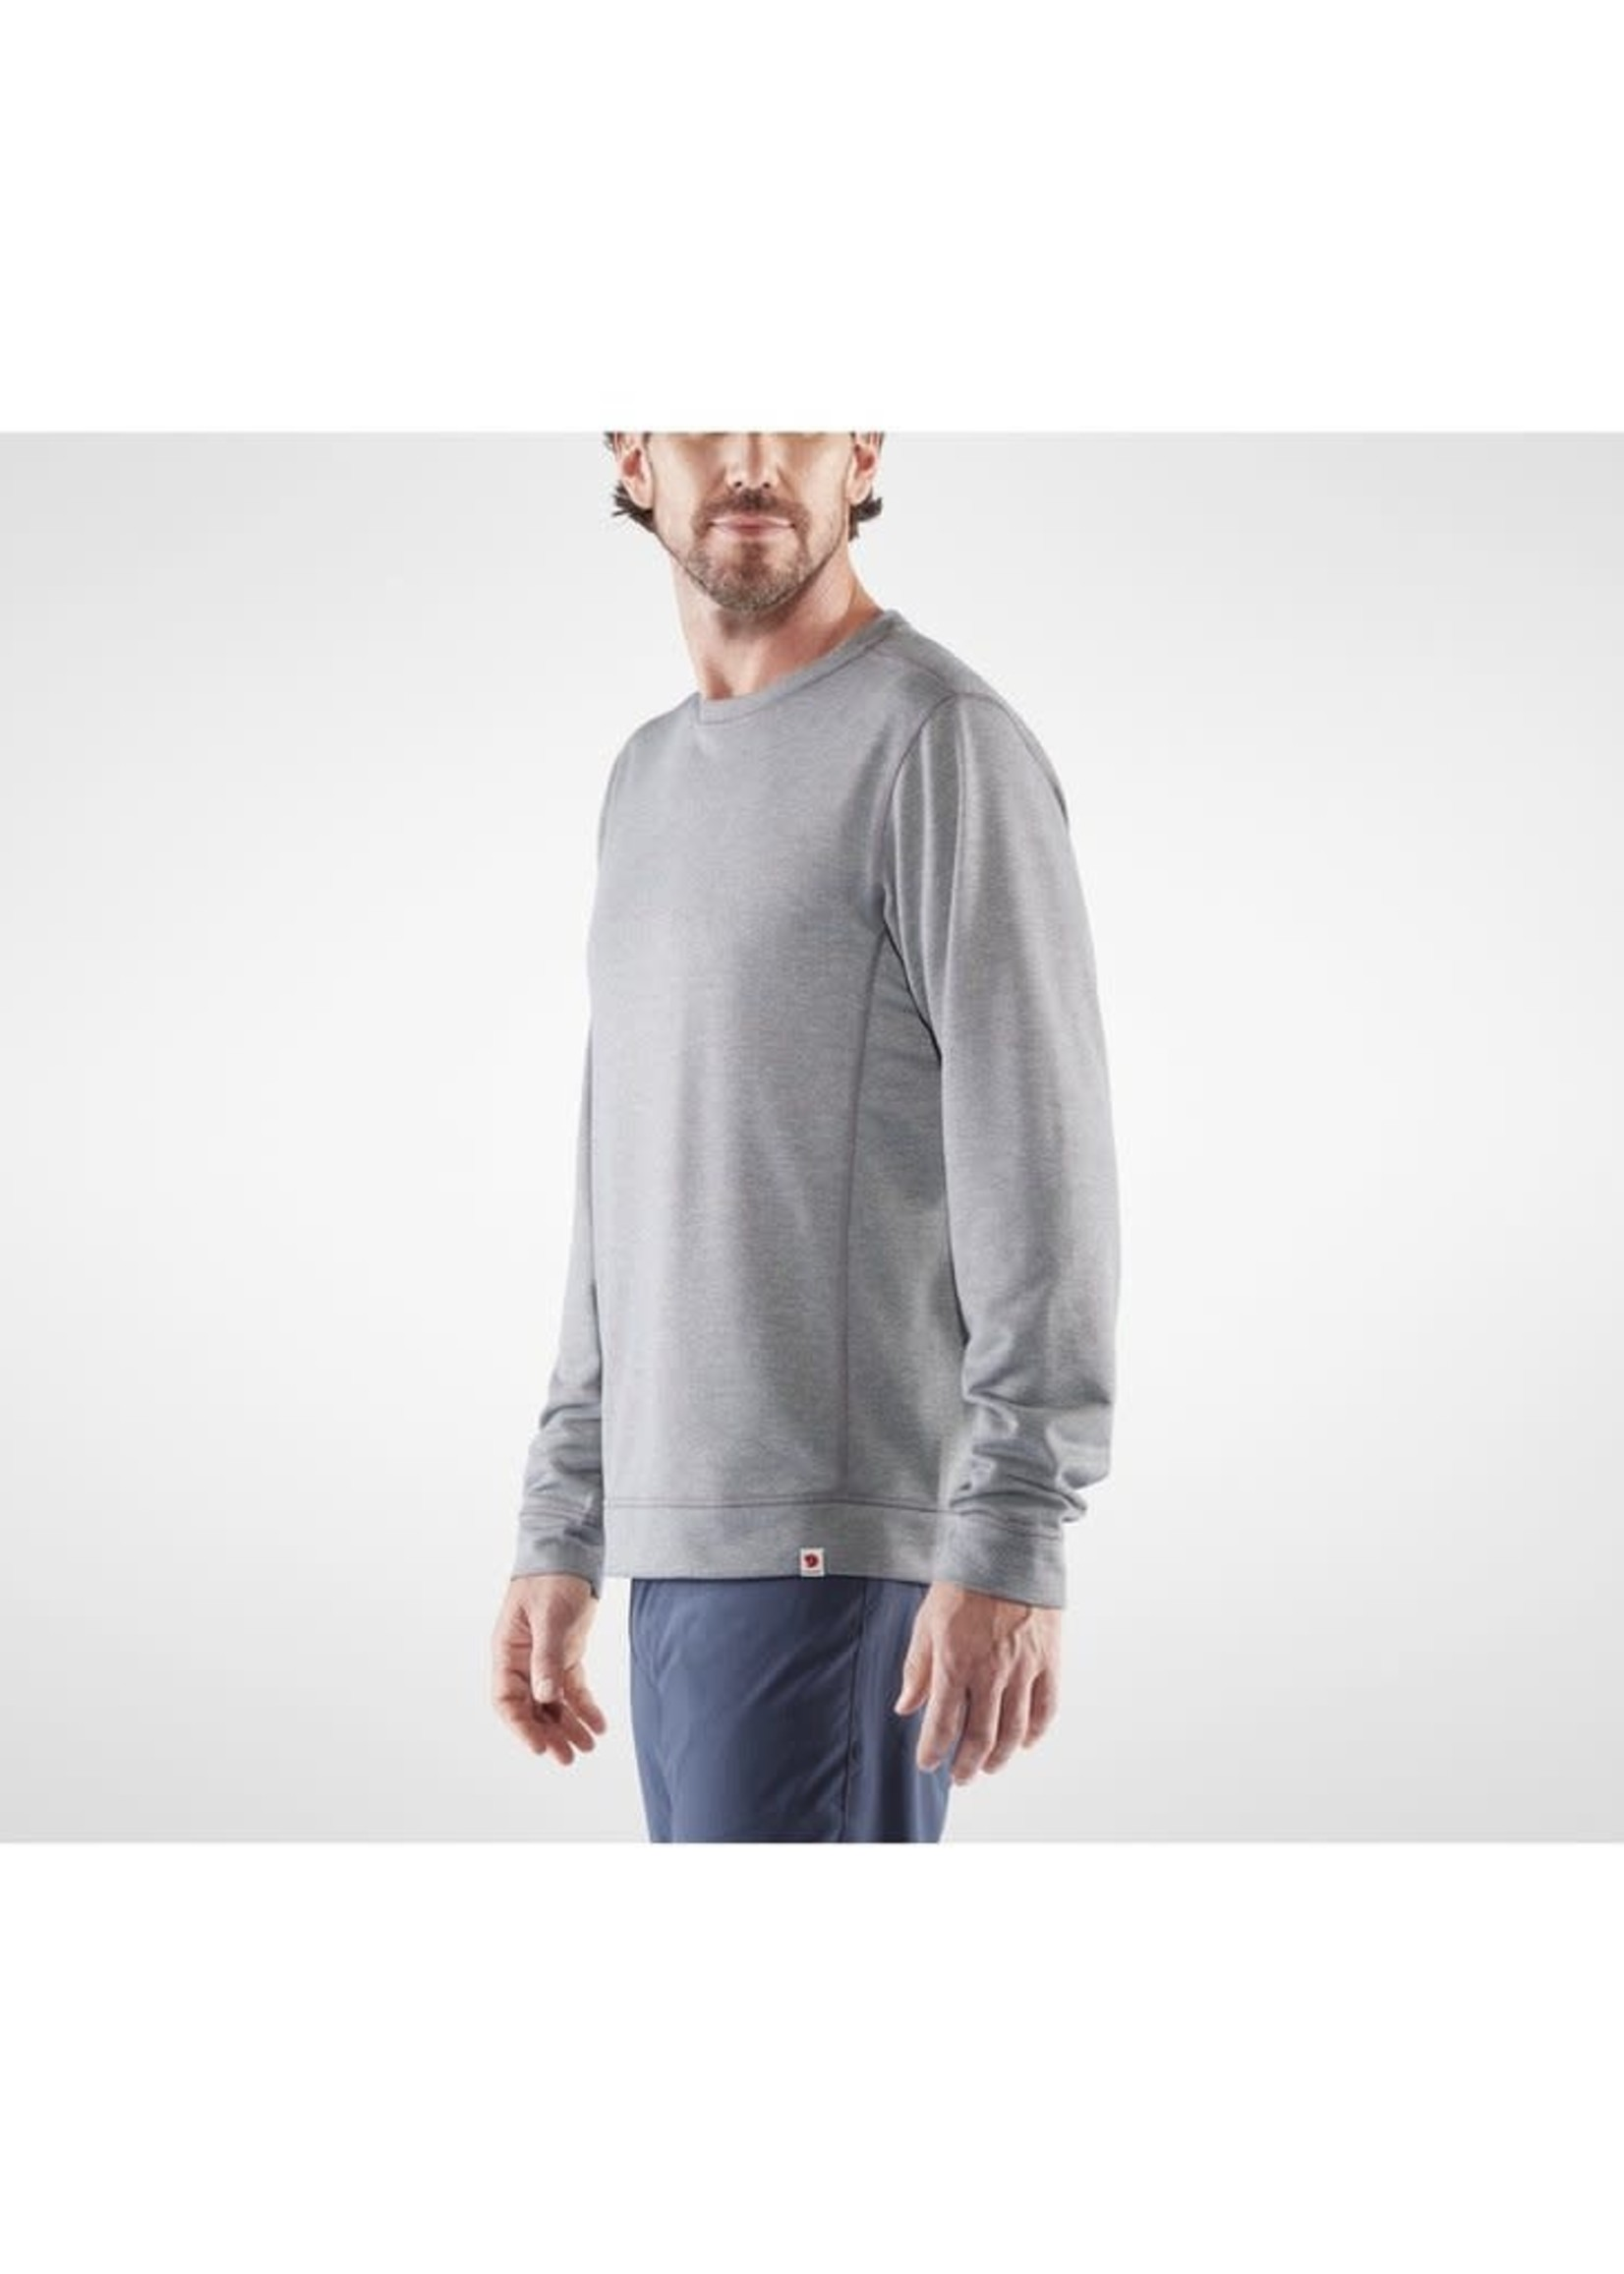 FJALL RAVEN HIGH COAST LITE Sweater, Recycled Fabric